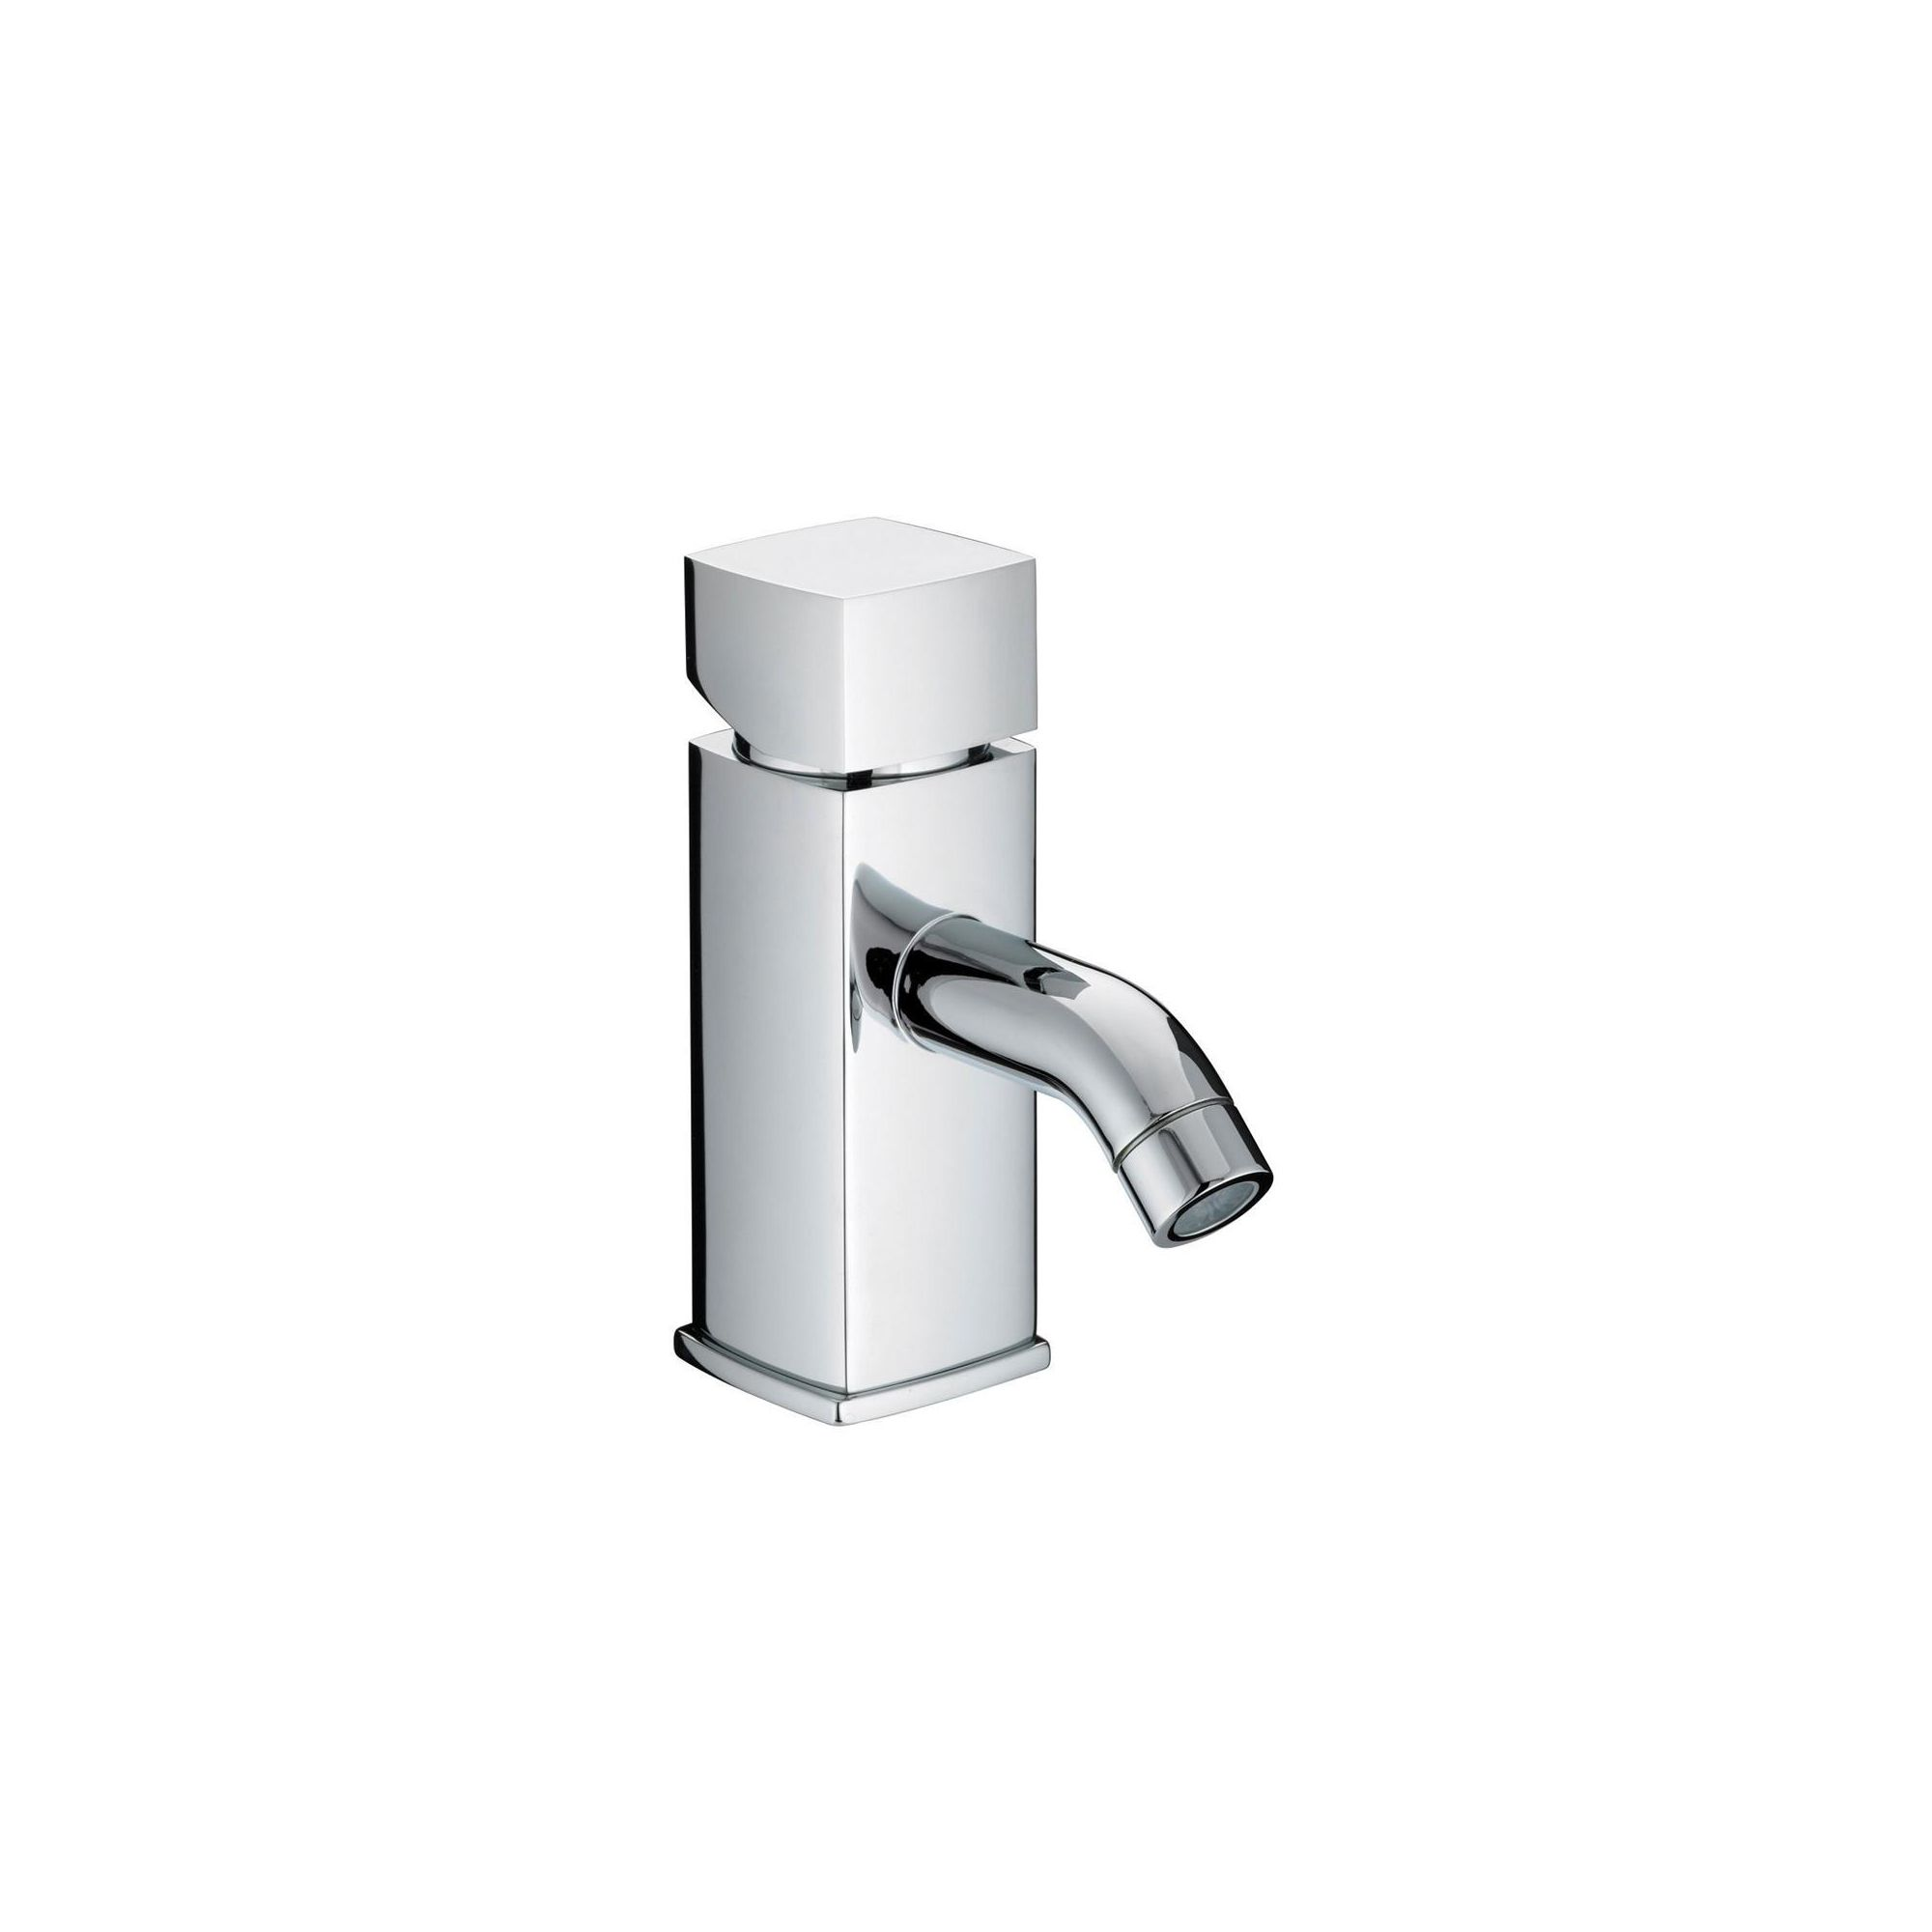 Bristan JS2 Square 1 Hole Bath Filler Tap Chrome Plated at Tescos Direct